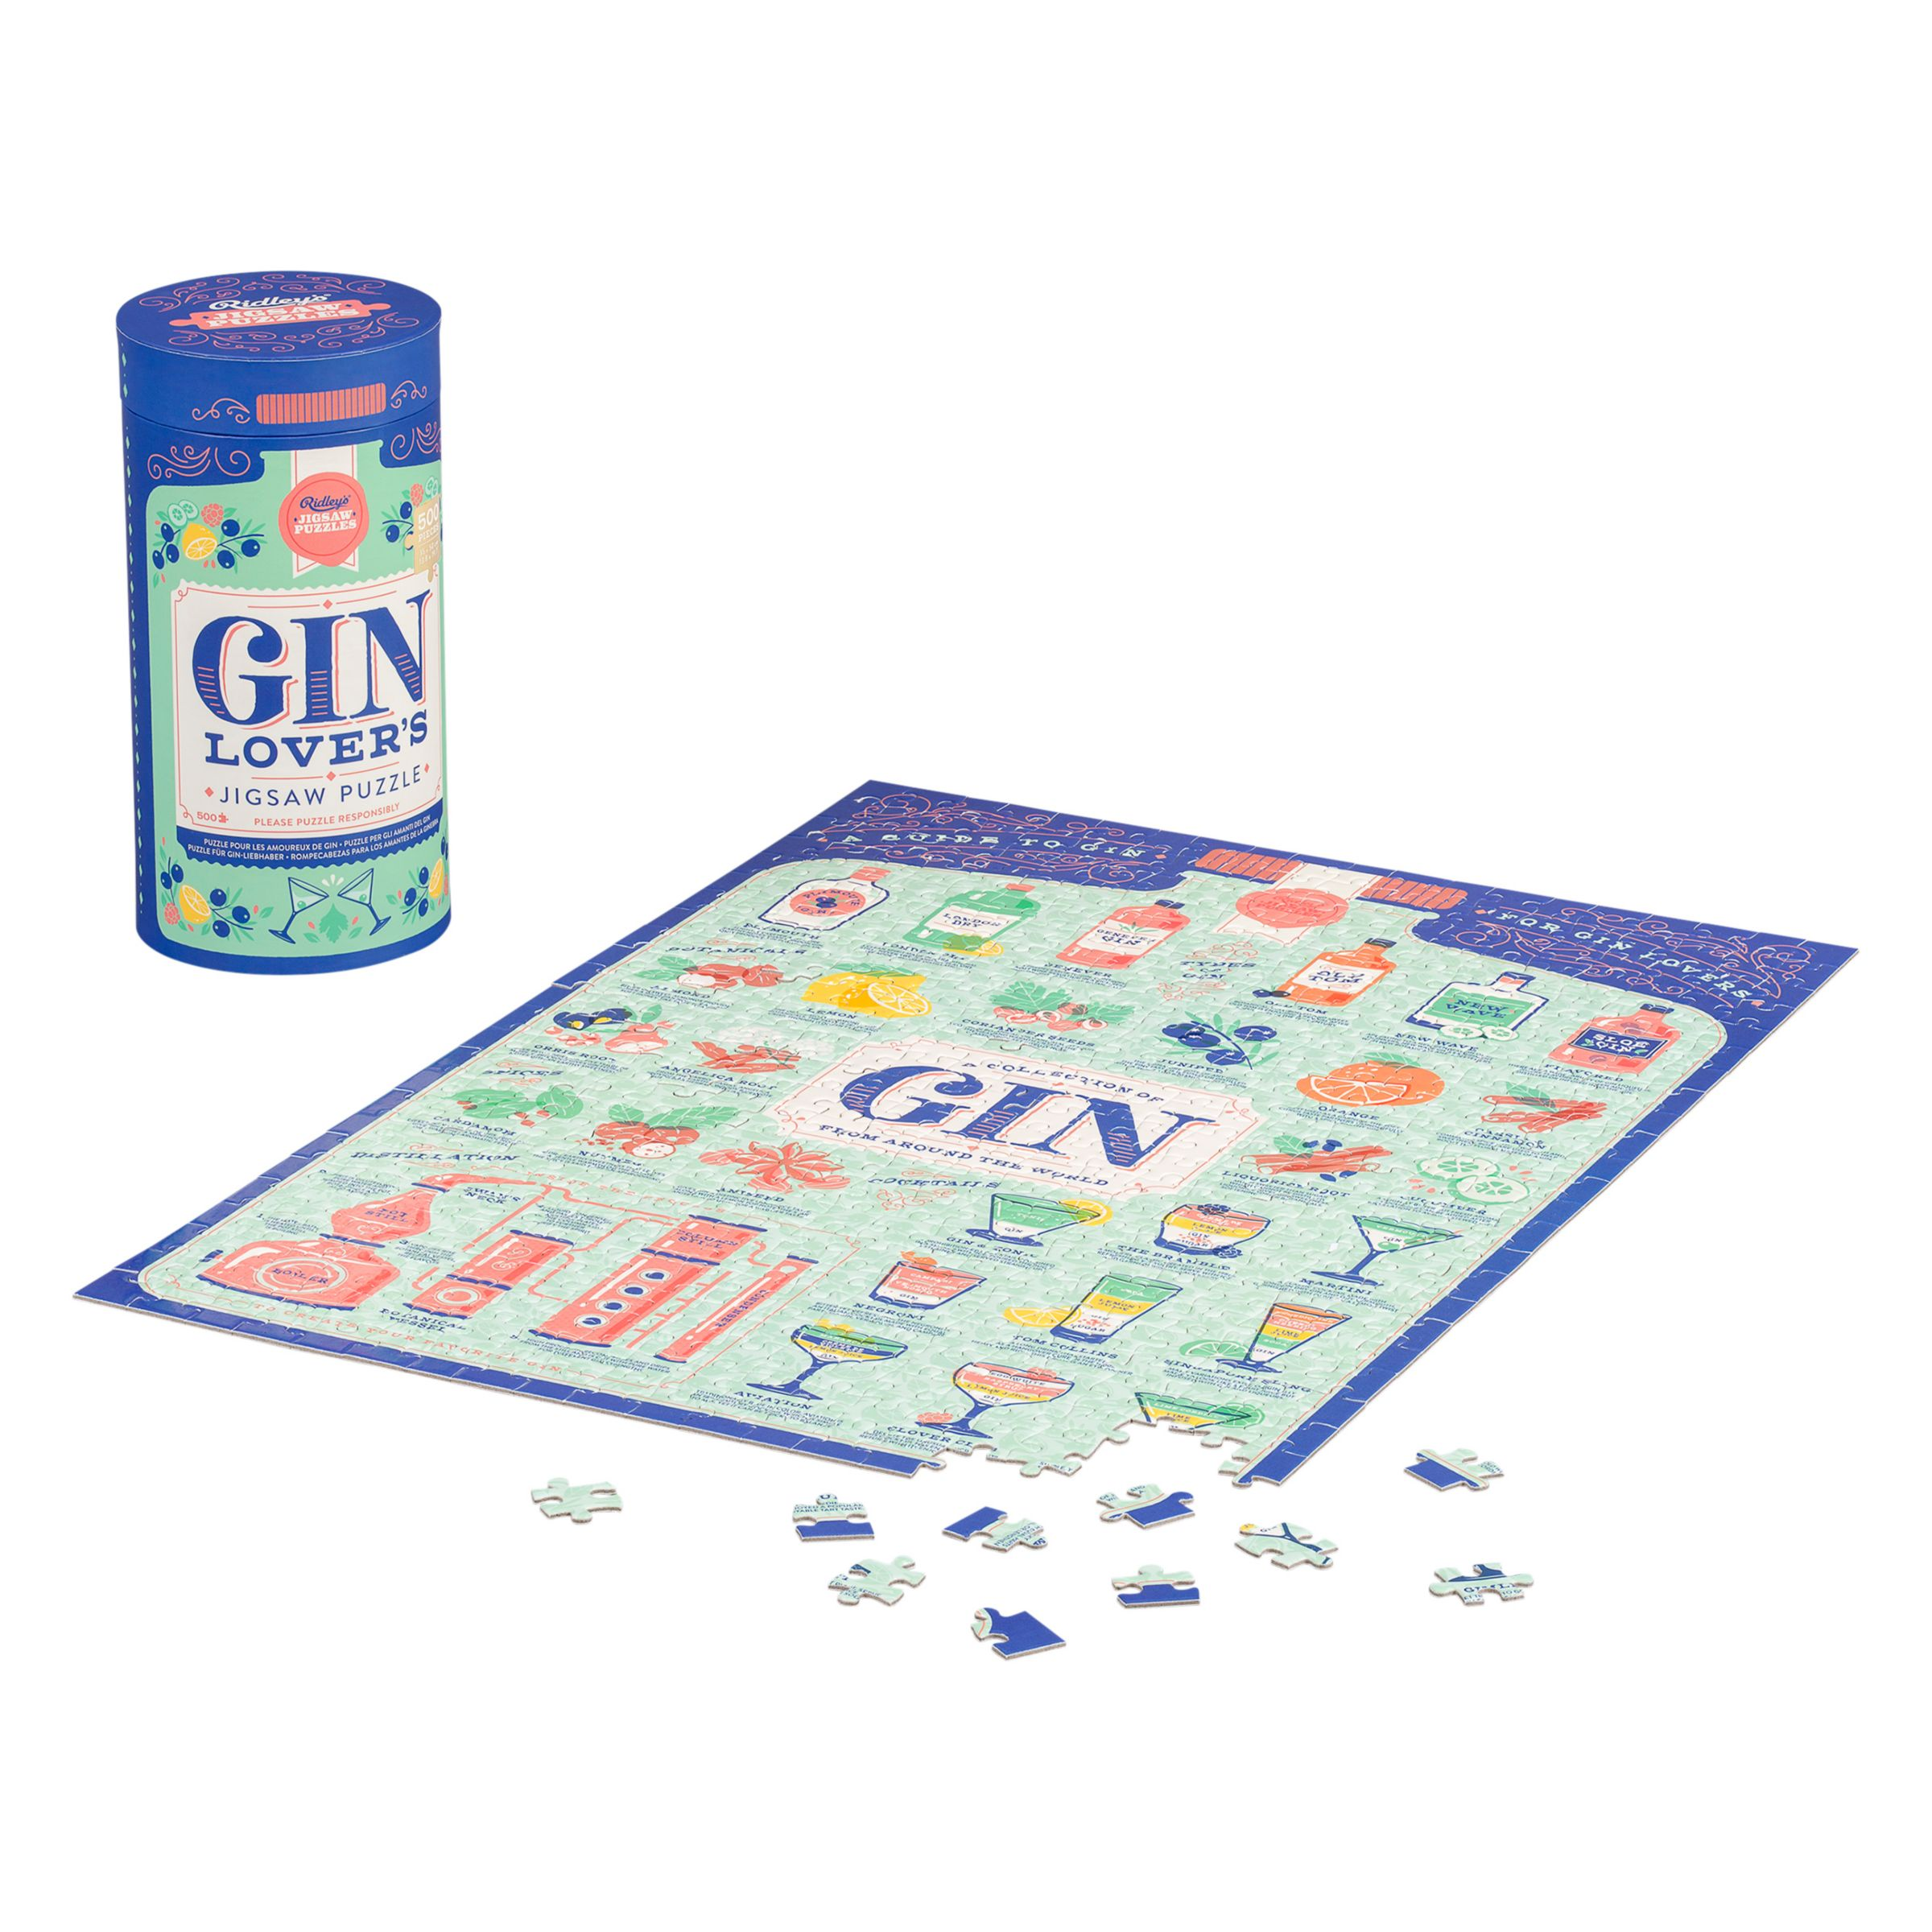 Ridley's Ridleys Gin Lover Jigsaw Puzzle, 500 pieces